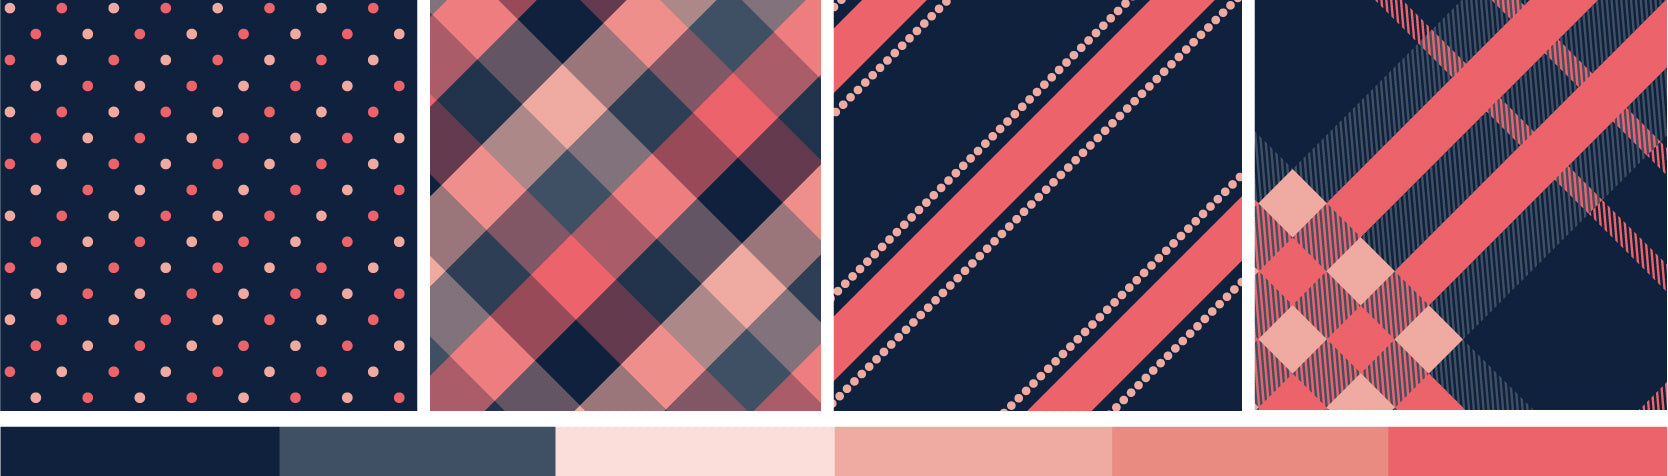 Plaid Tie Designs